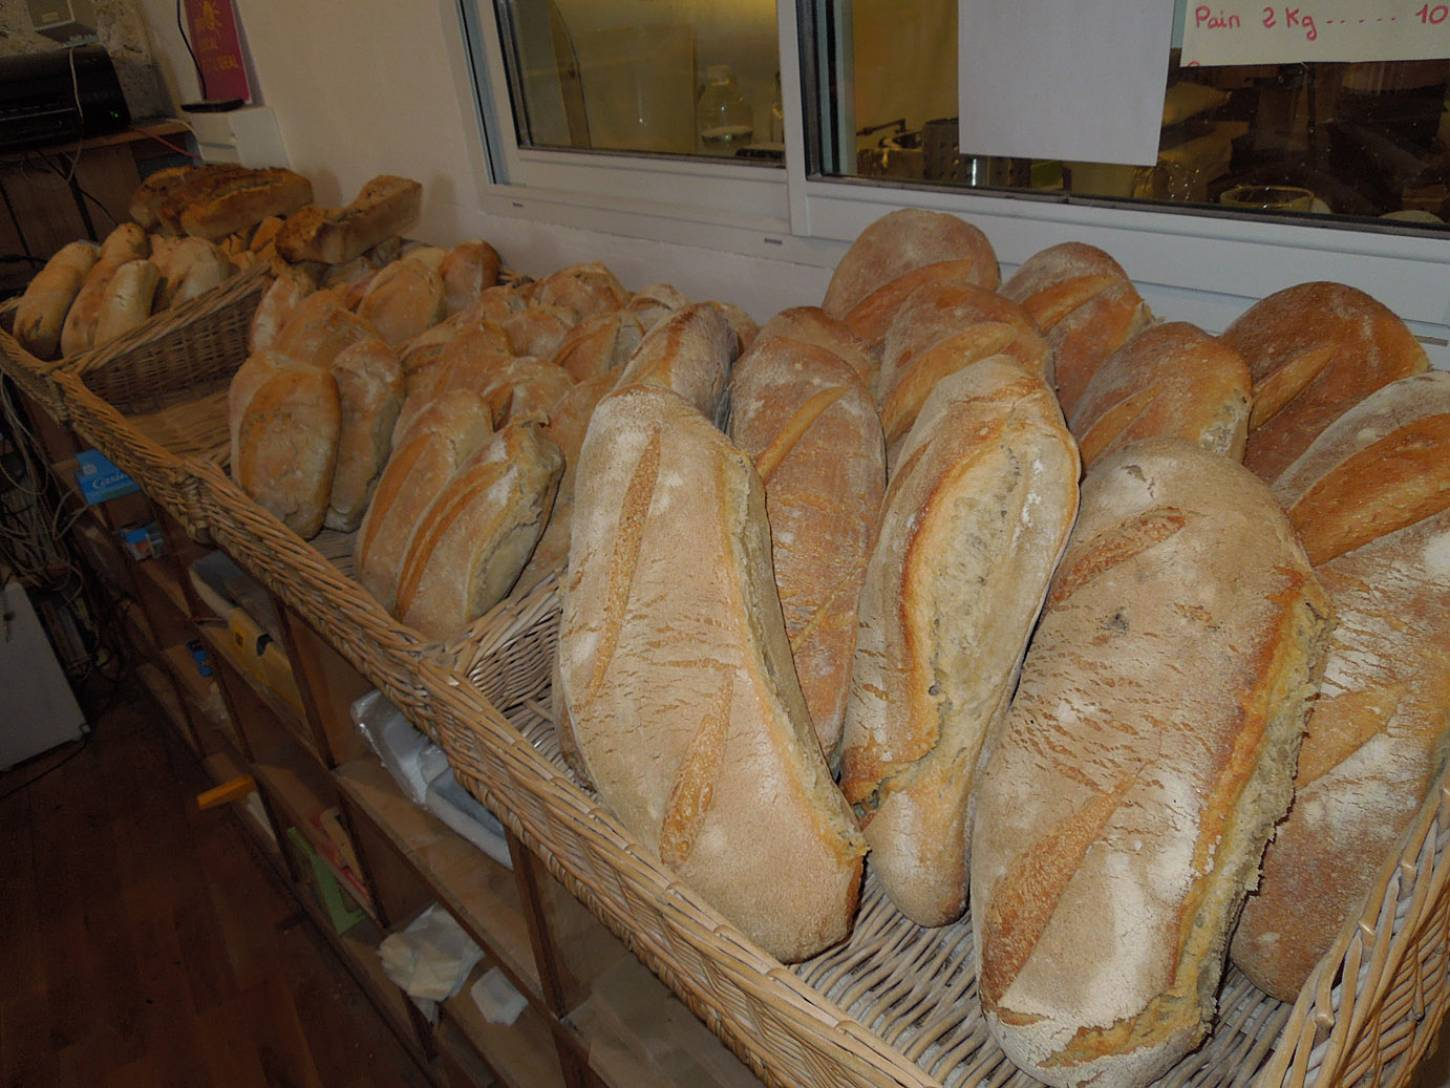 visit to the boulangers paysan of <a href='https://www.facebook.com/Ferme.Campagnolle' target=_blank>Ferme Campognole</a> the day's bread - 10:25am&nbsp;29<sup>th</sup>&nbsp;May.&nbsp;'15